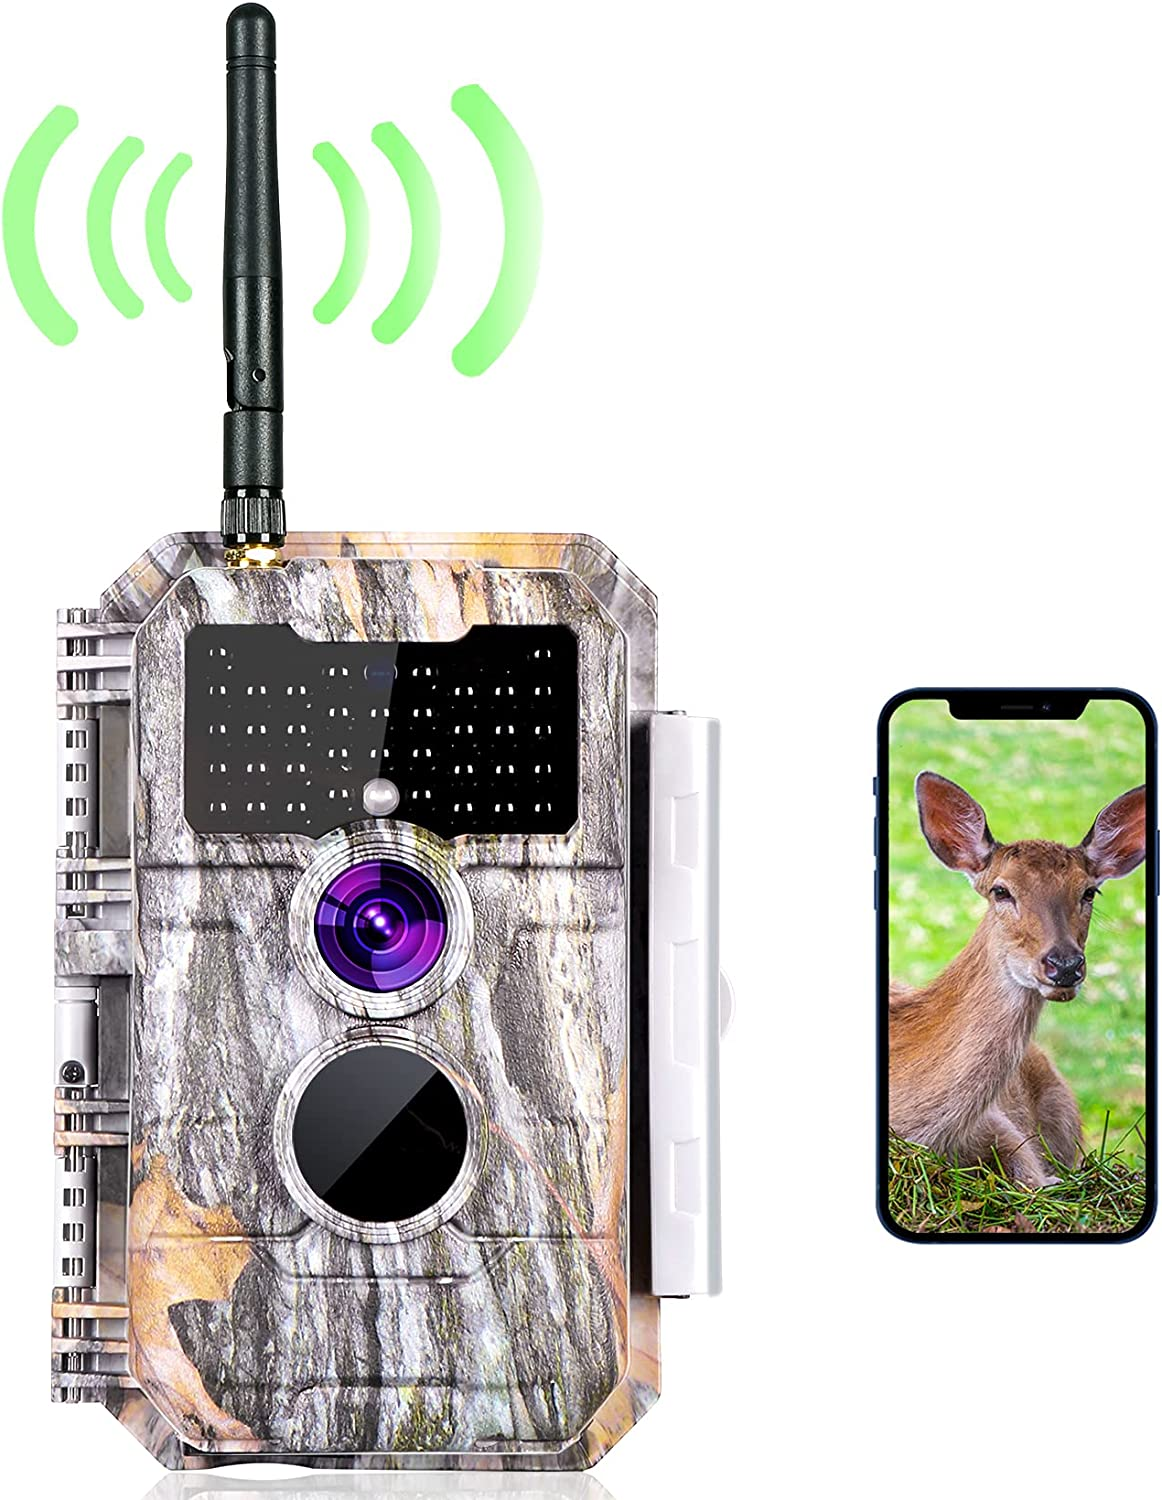 Details about  /2-Pack No Glow Trail Game Deer Cameras 20MP 1080P H.264 Video Night Vision Mo...